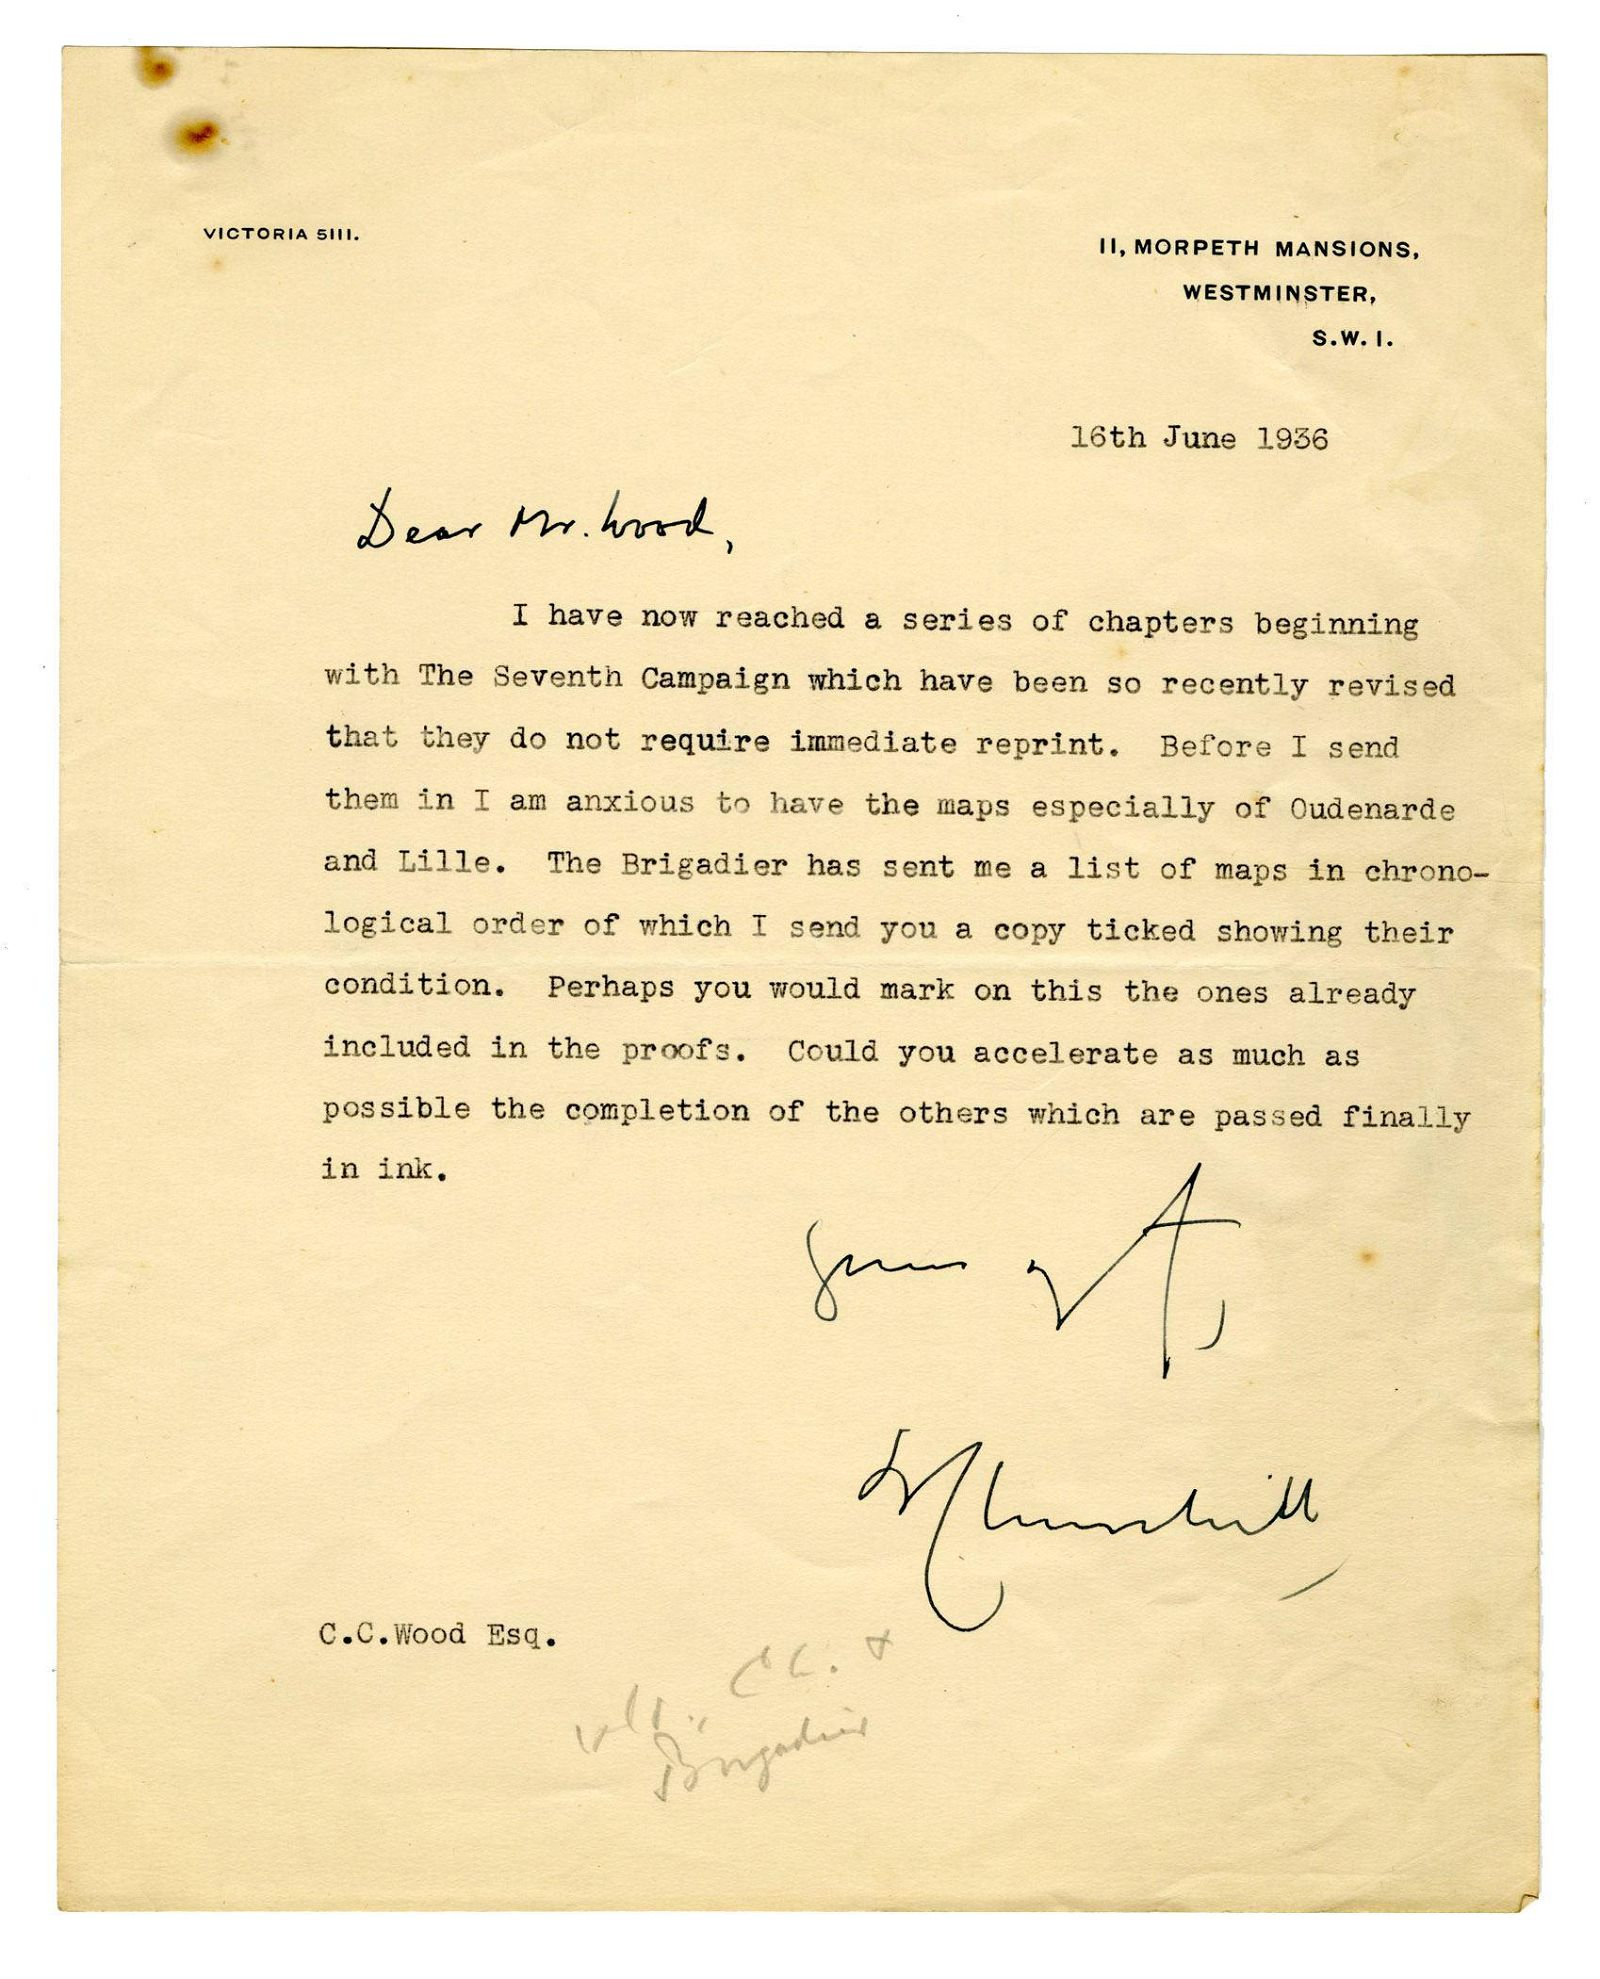 Winston Churchill Inquires About Maps for His Biography